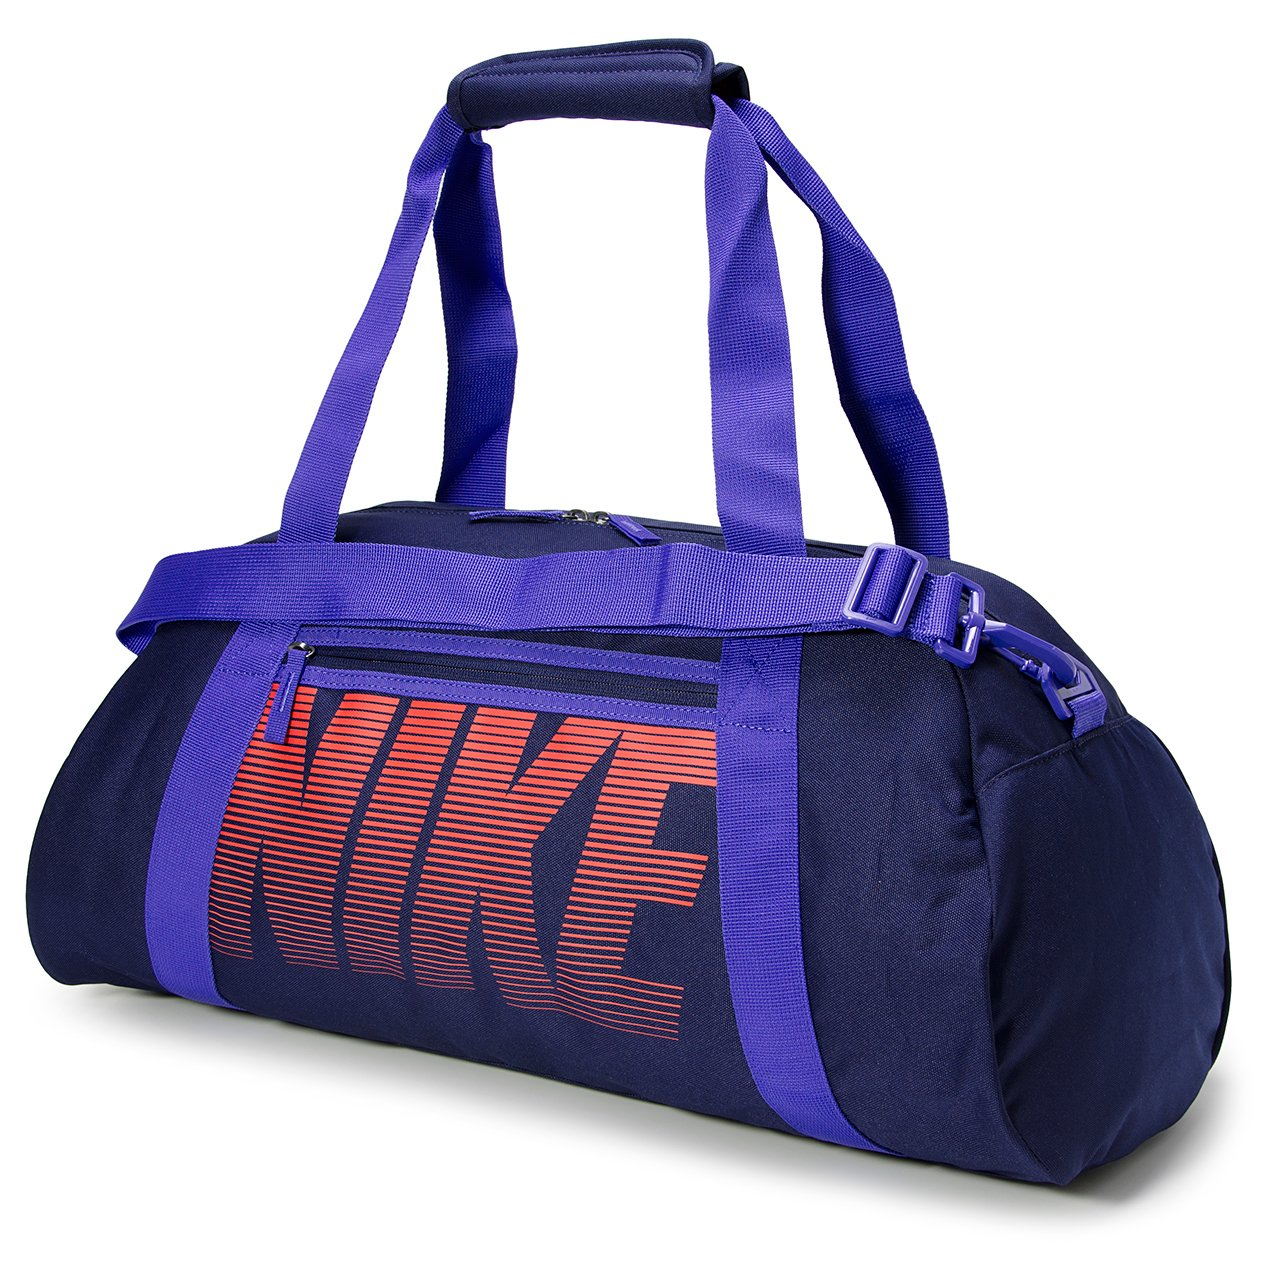 ... outlet on sale 34ceb f5398 Galleon - Nike Gym Club Women s Training Duffel  Bag ... d9a2620ad8cf4